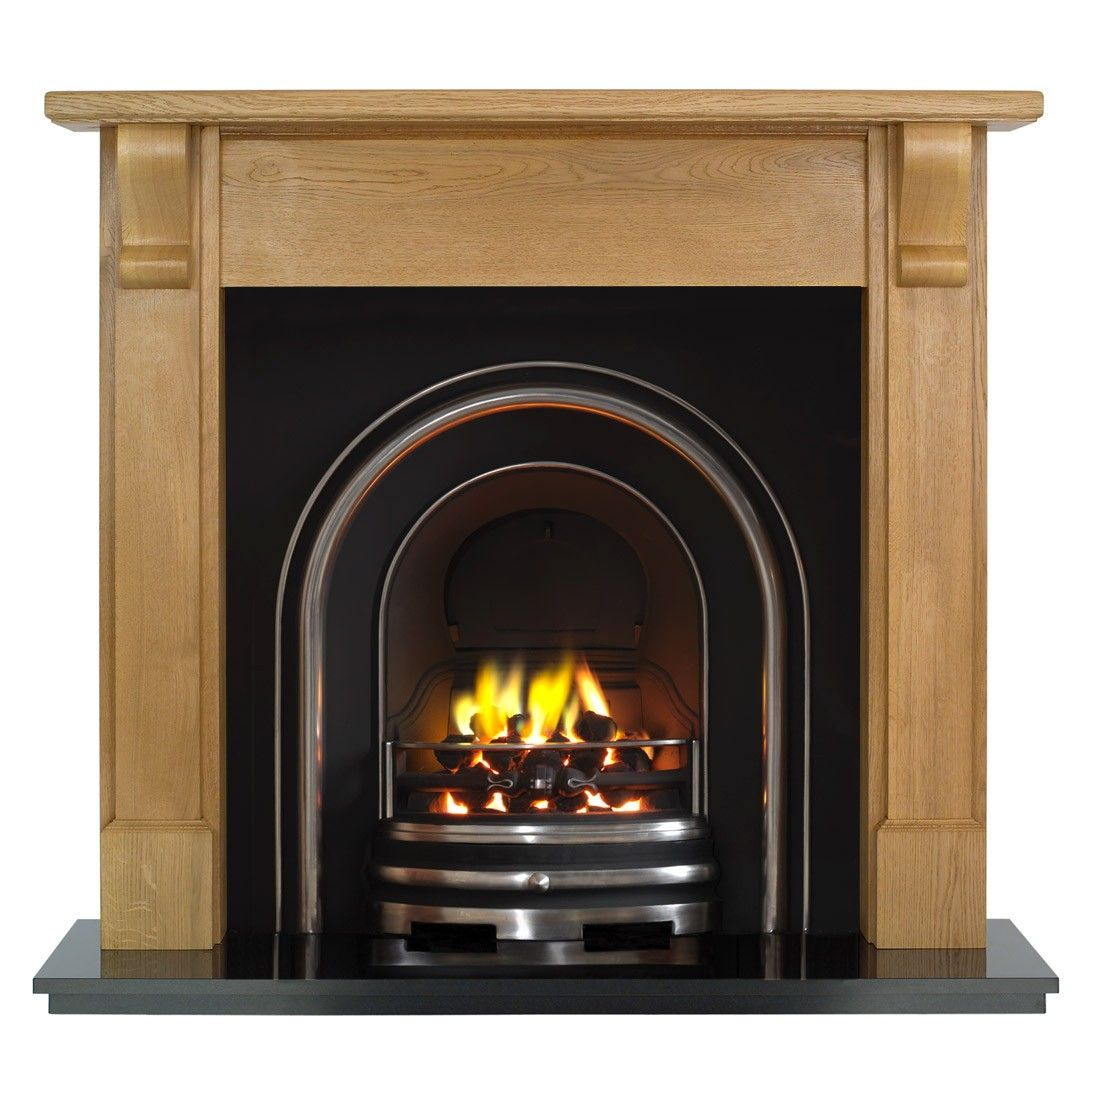 Bedford Arch Fireplace Package Wood Fireplaces Fireplace Packages Wooden Fireplace Wood Fireplace Cast Iron Fireplace